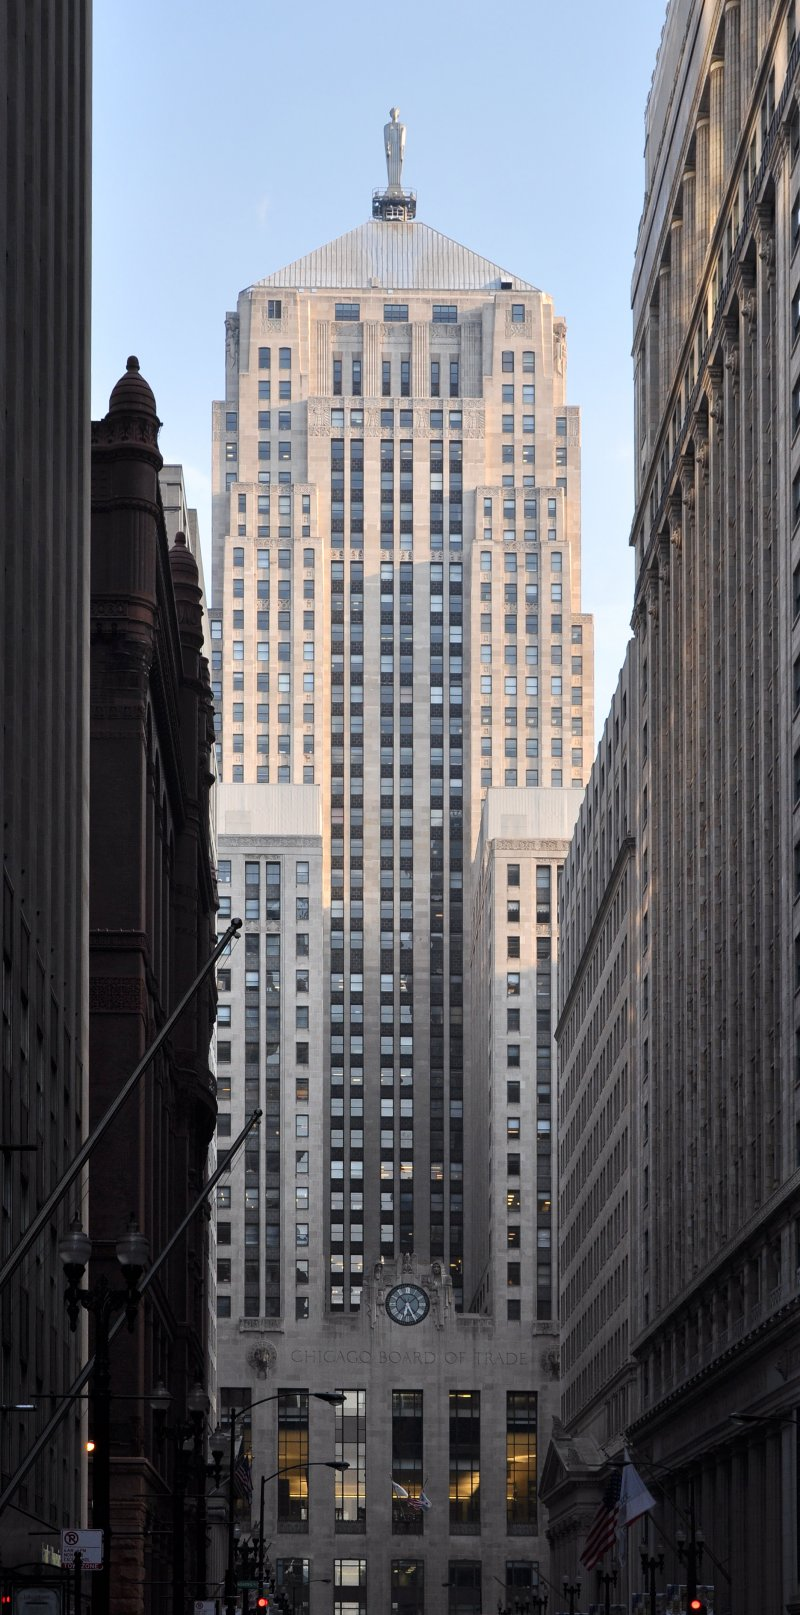 The Chicago Board of Trade Building